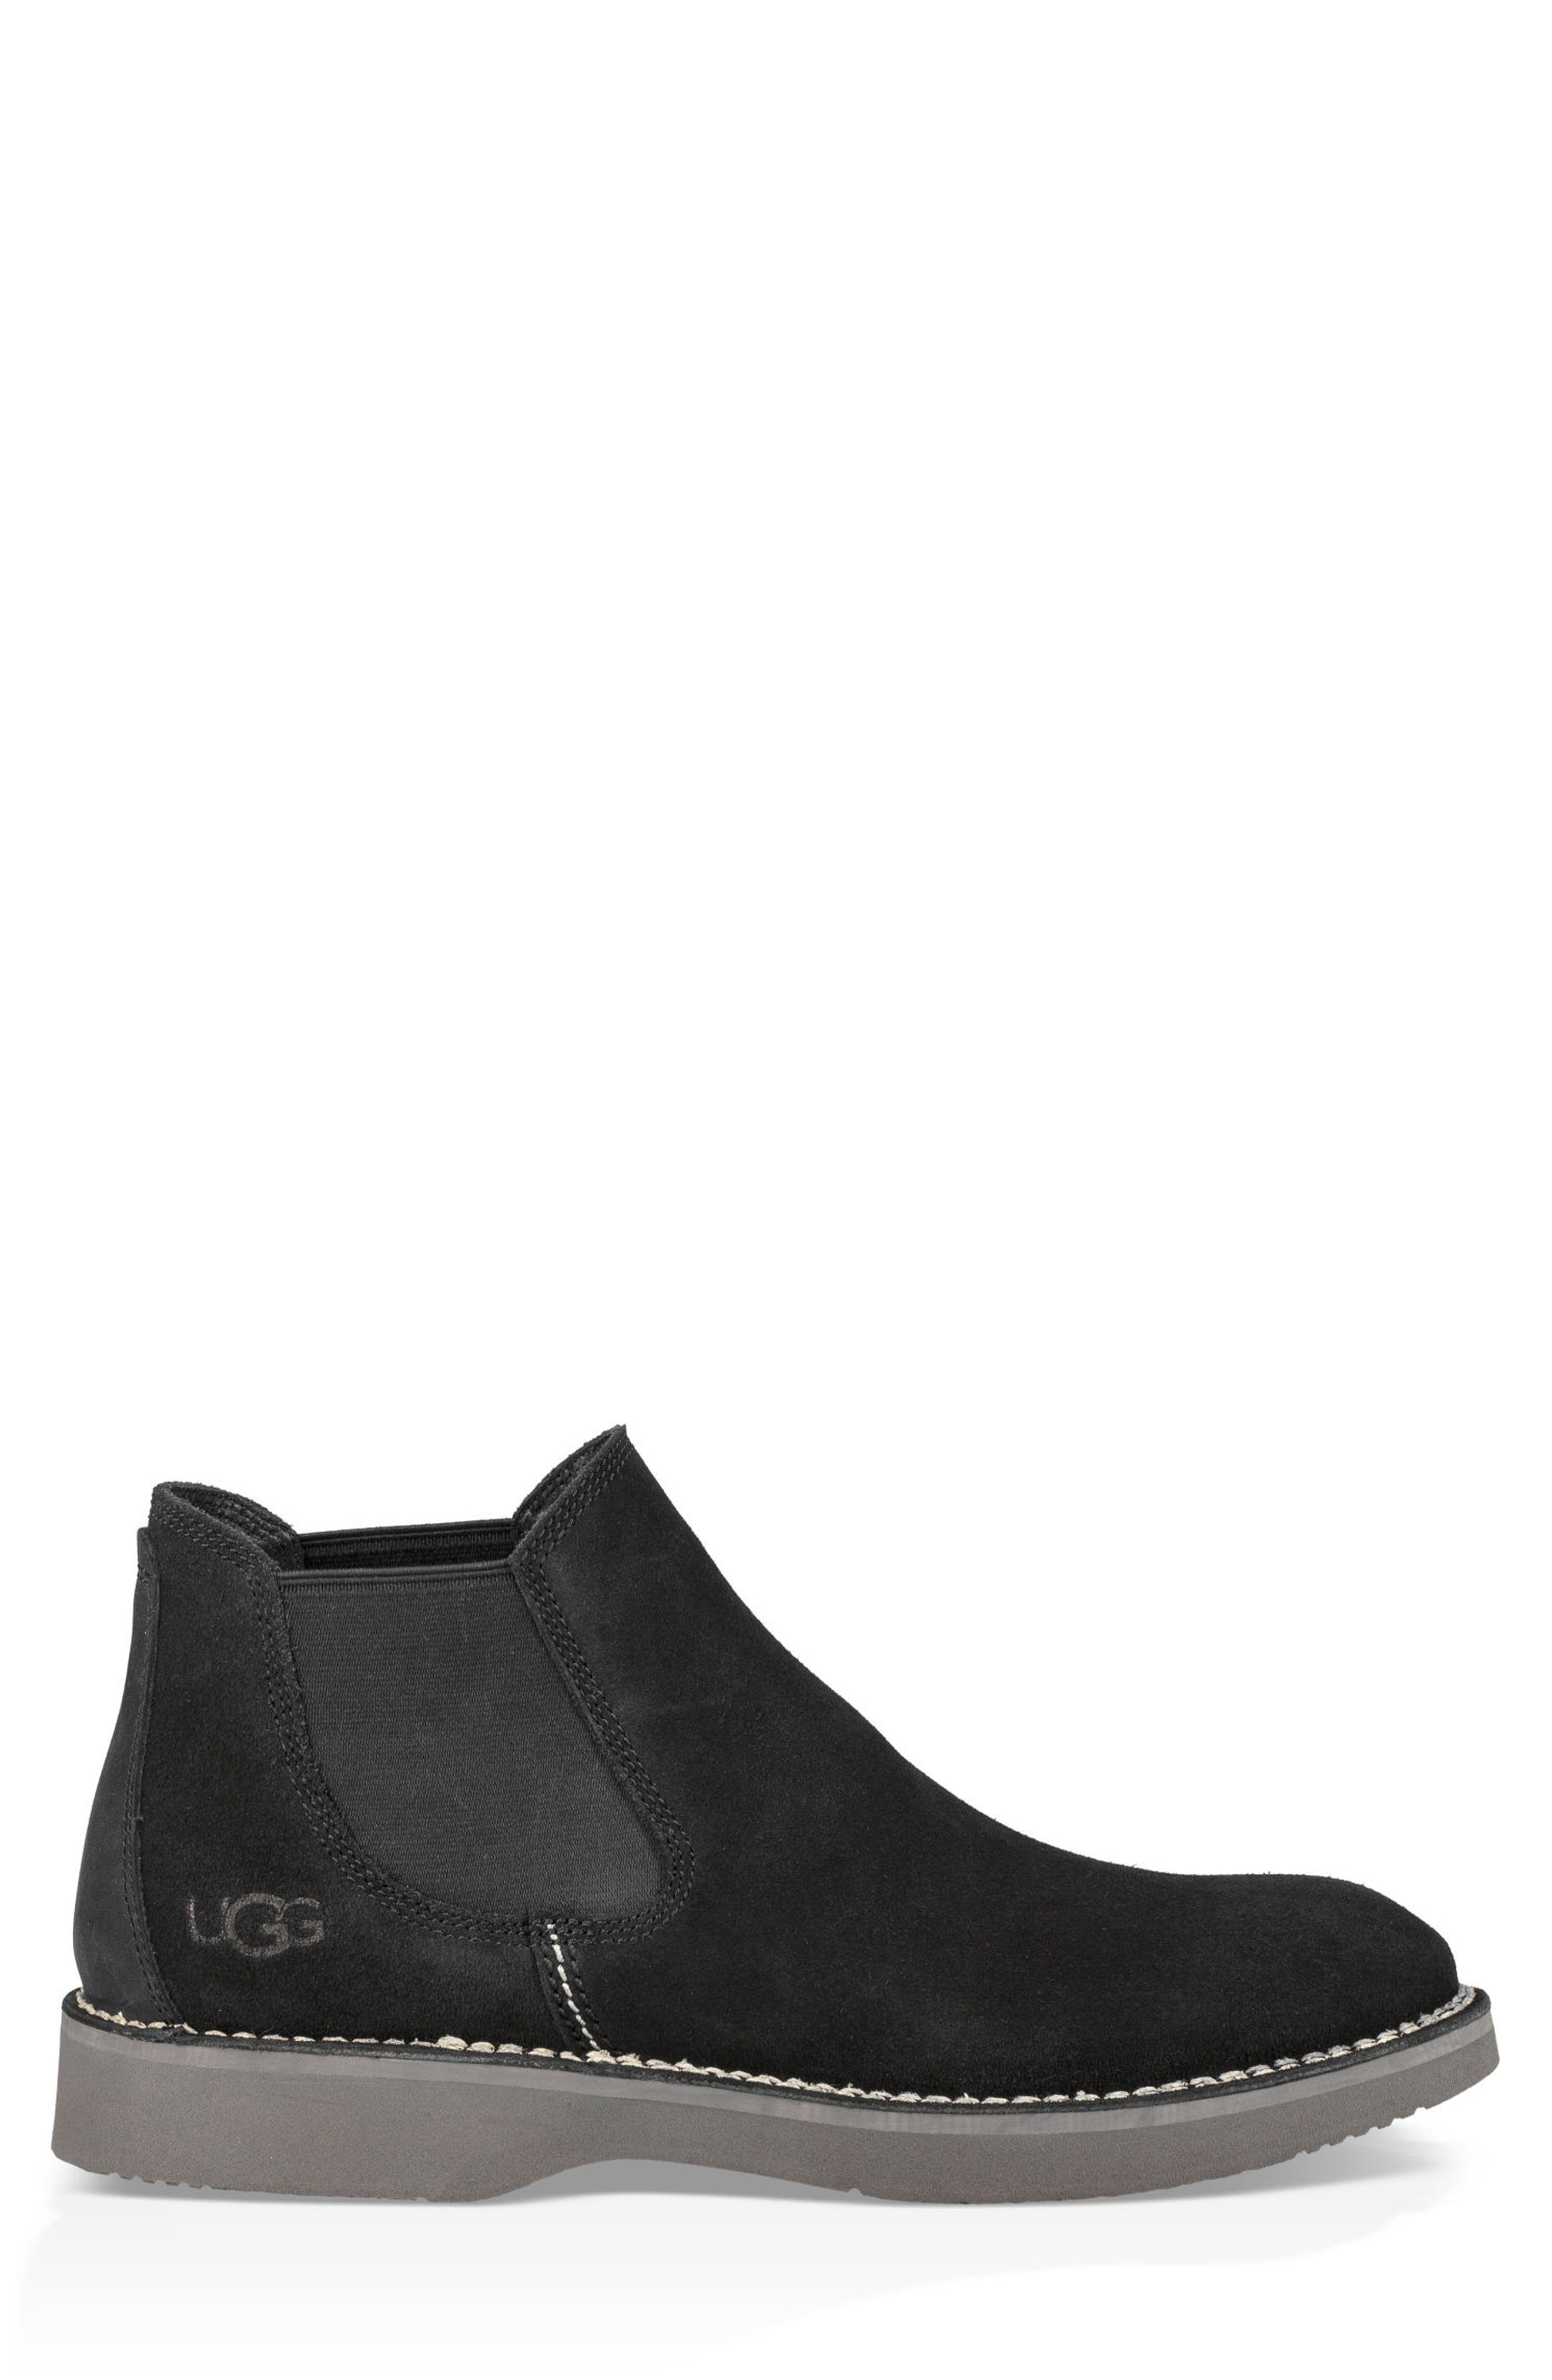 Camino Chelsea Boot,                             Alternate thumbnail 3, color,                             BLACK